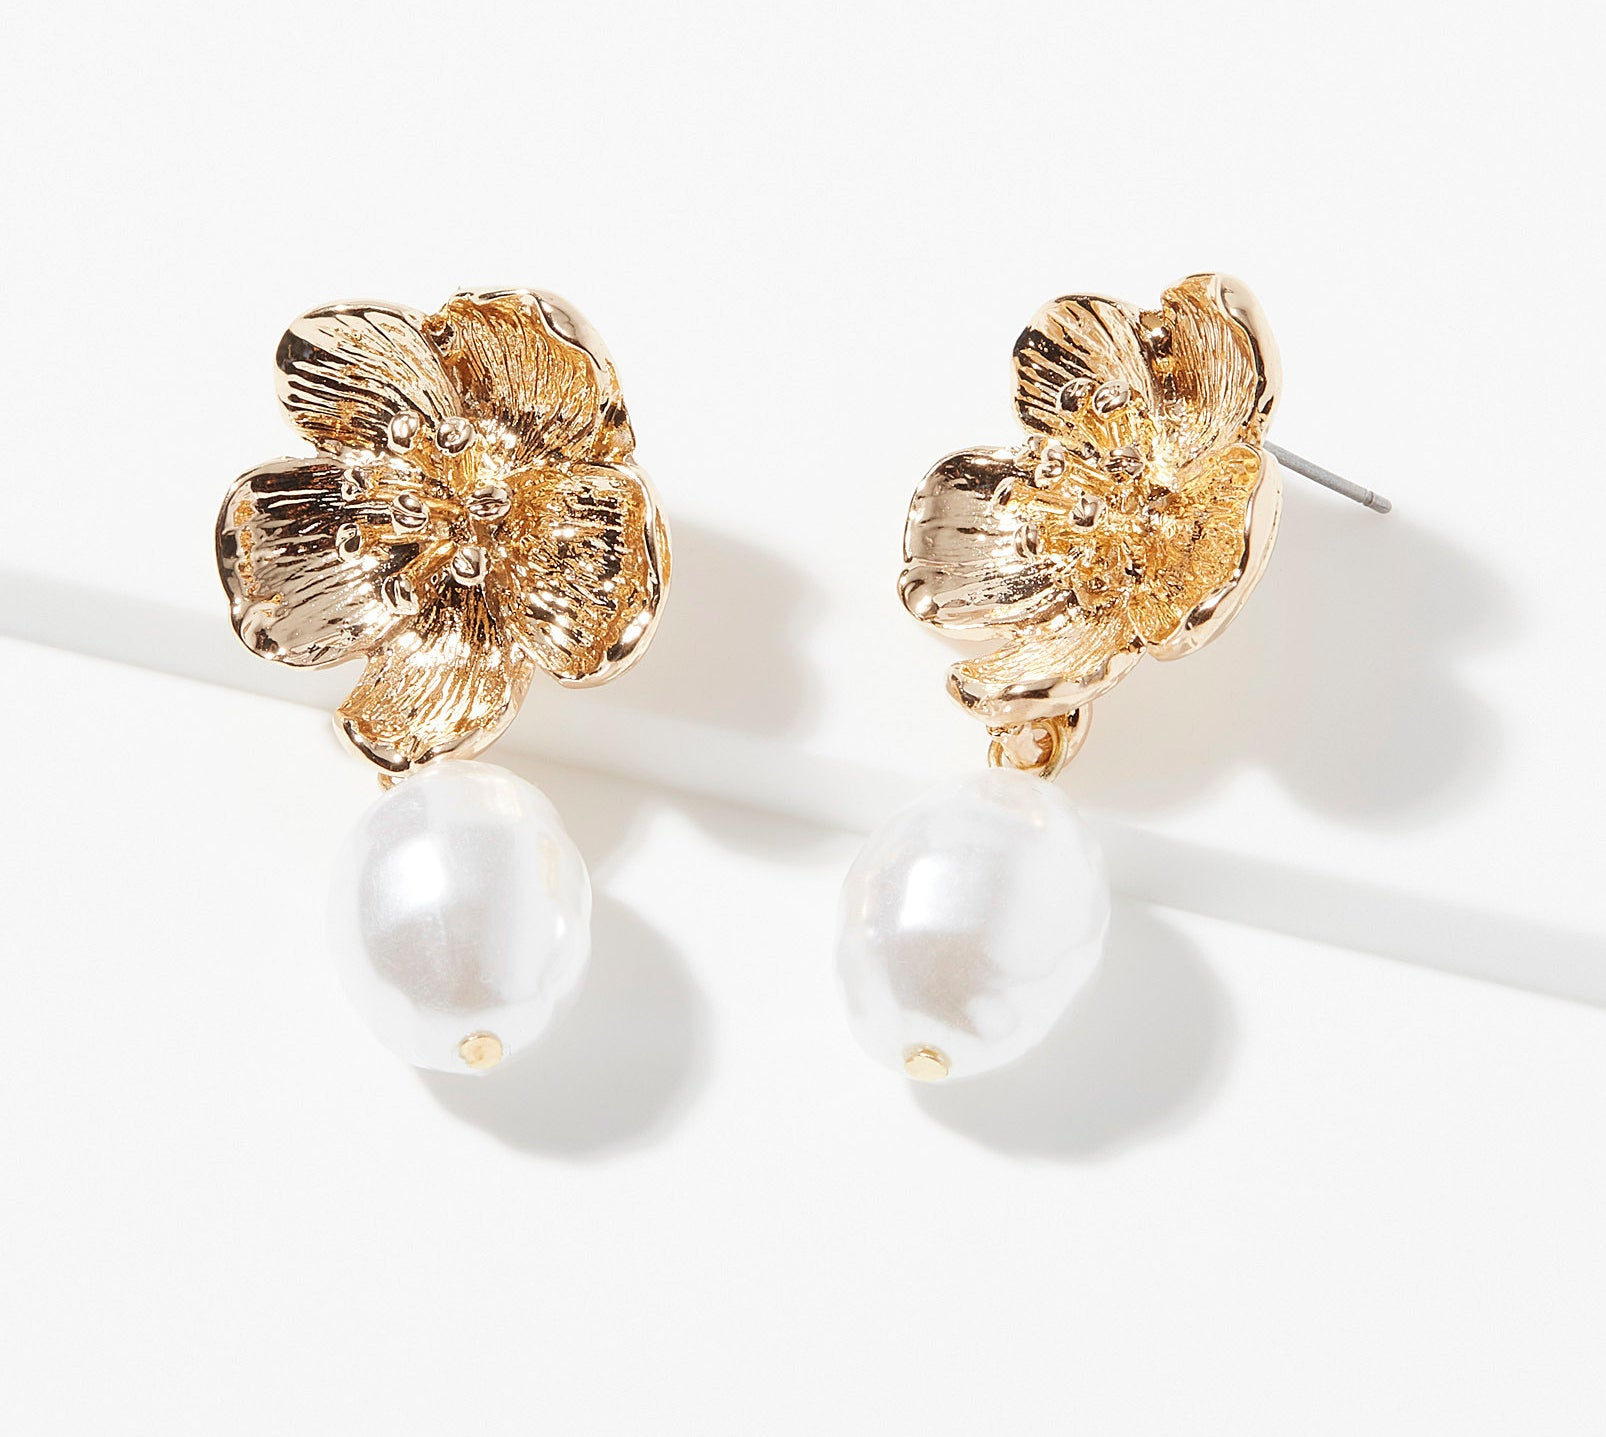 A pair of flower-shaped earrings on a plain background